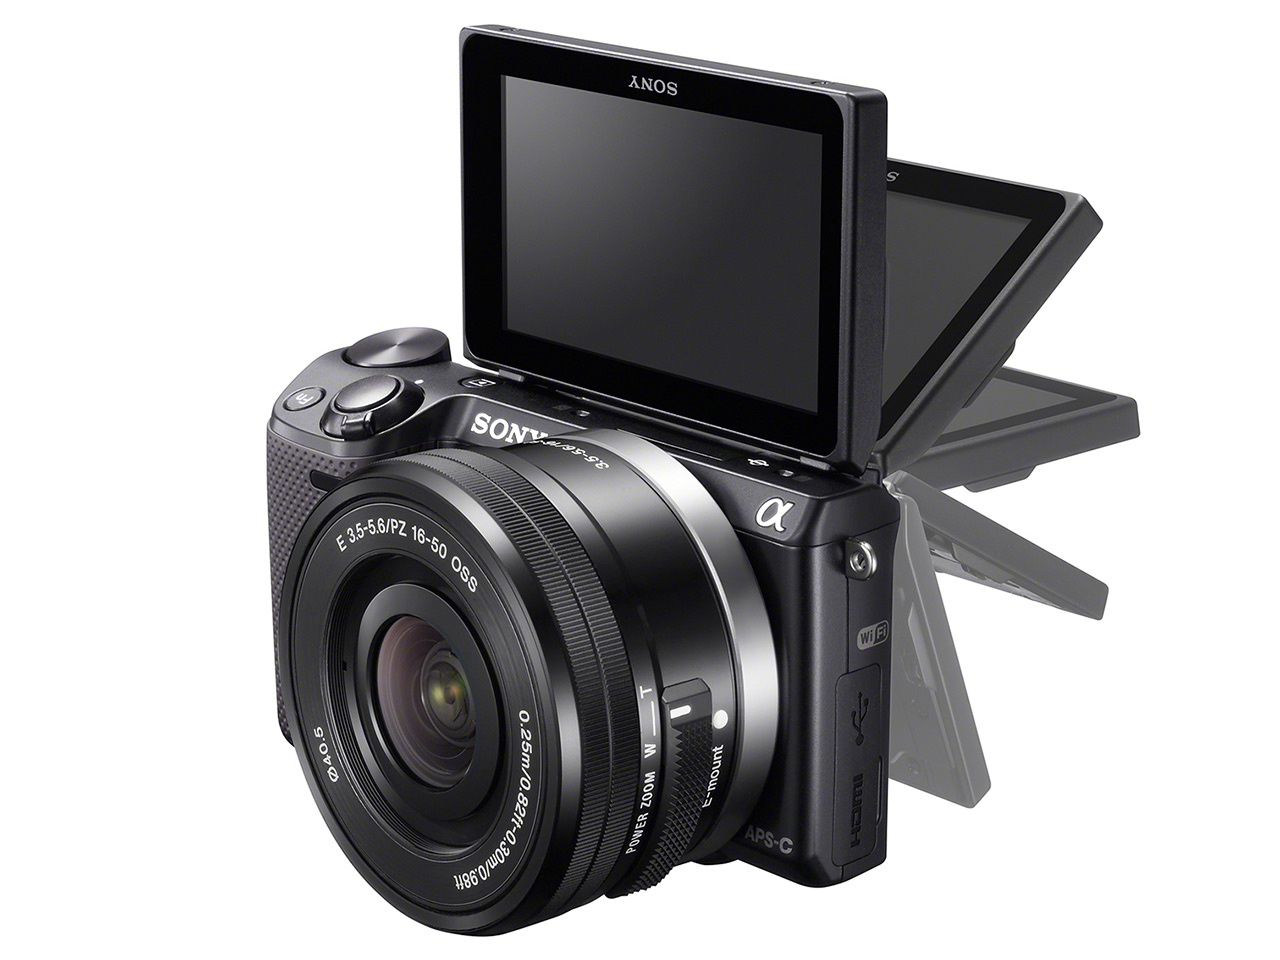 Sony introduces NEX-5T Wi-Fi and NFC enabled mirrorless camera: Digital Photography Review